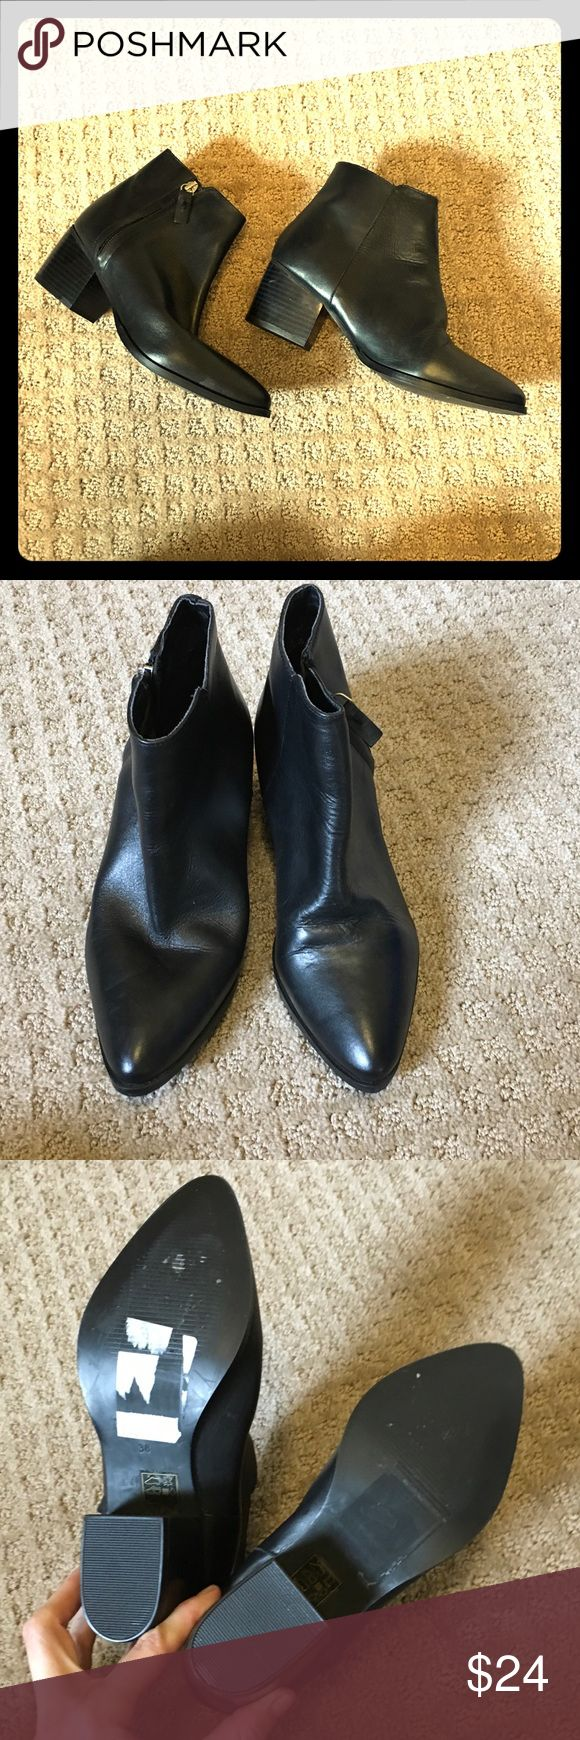 Topshop Black Leather Chelsea Boots Booties Gently worn no flaws. Please do not ask me about fit, not my personal shoes. Topshop Shoes Ankle Boots & Booties